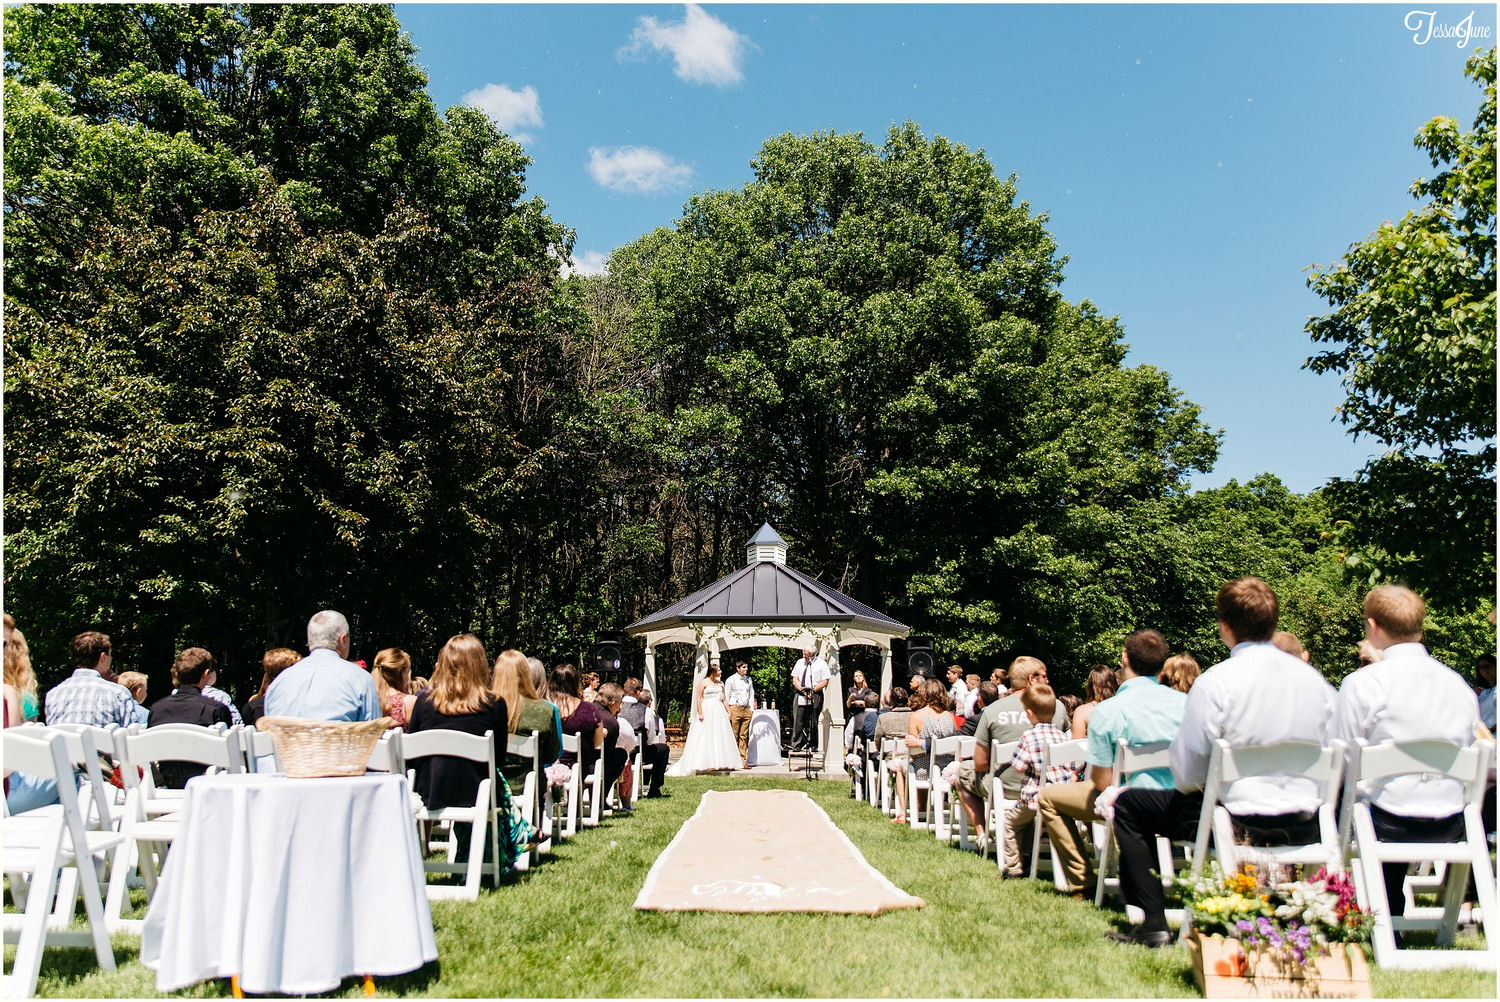 Wide shot gazebo and people